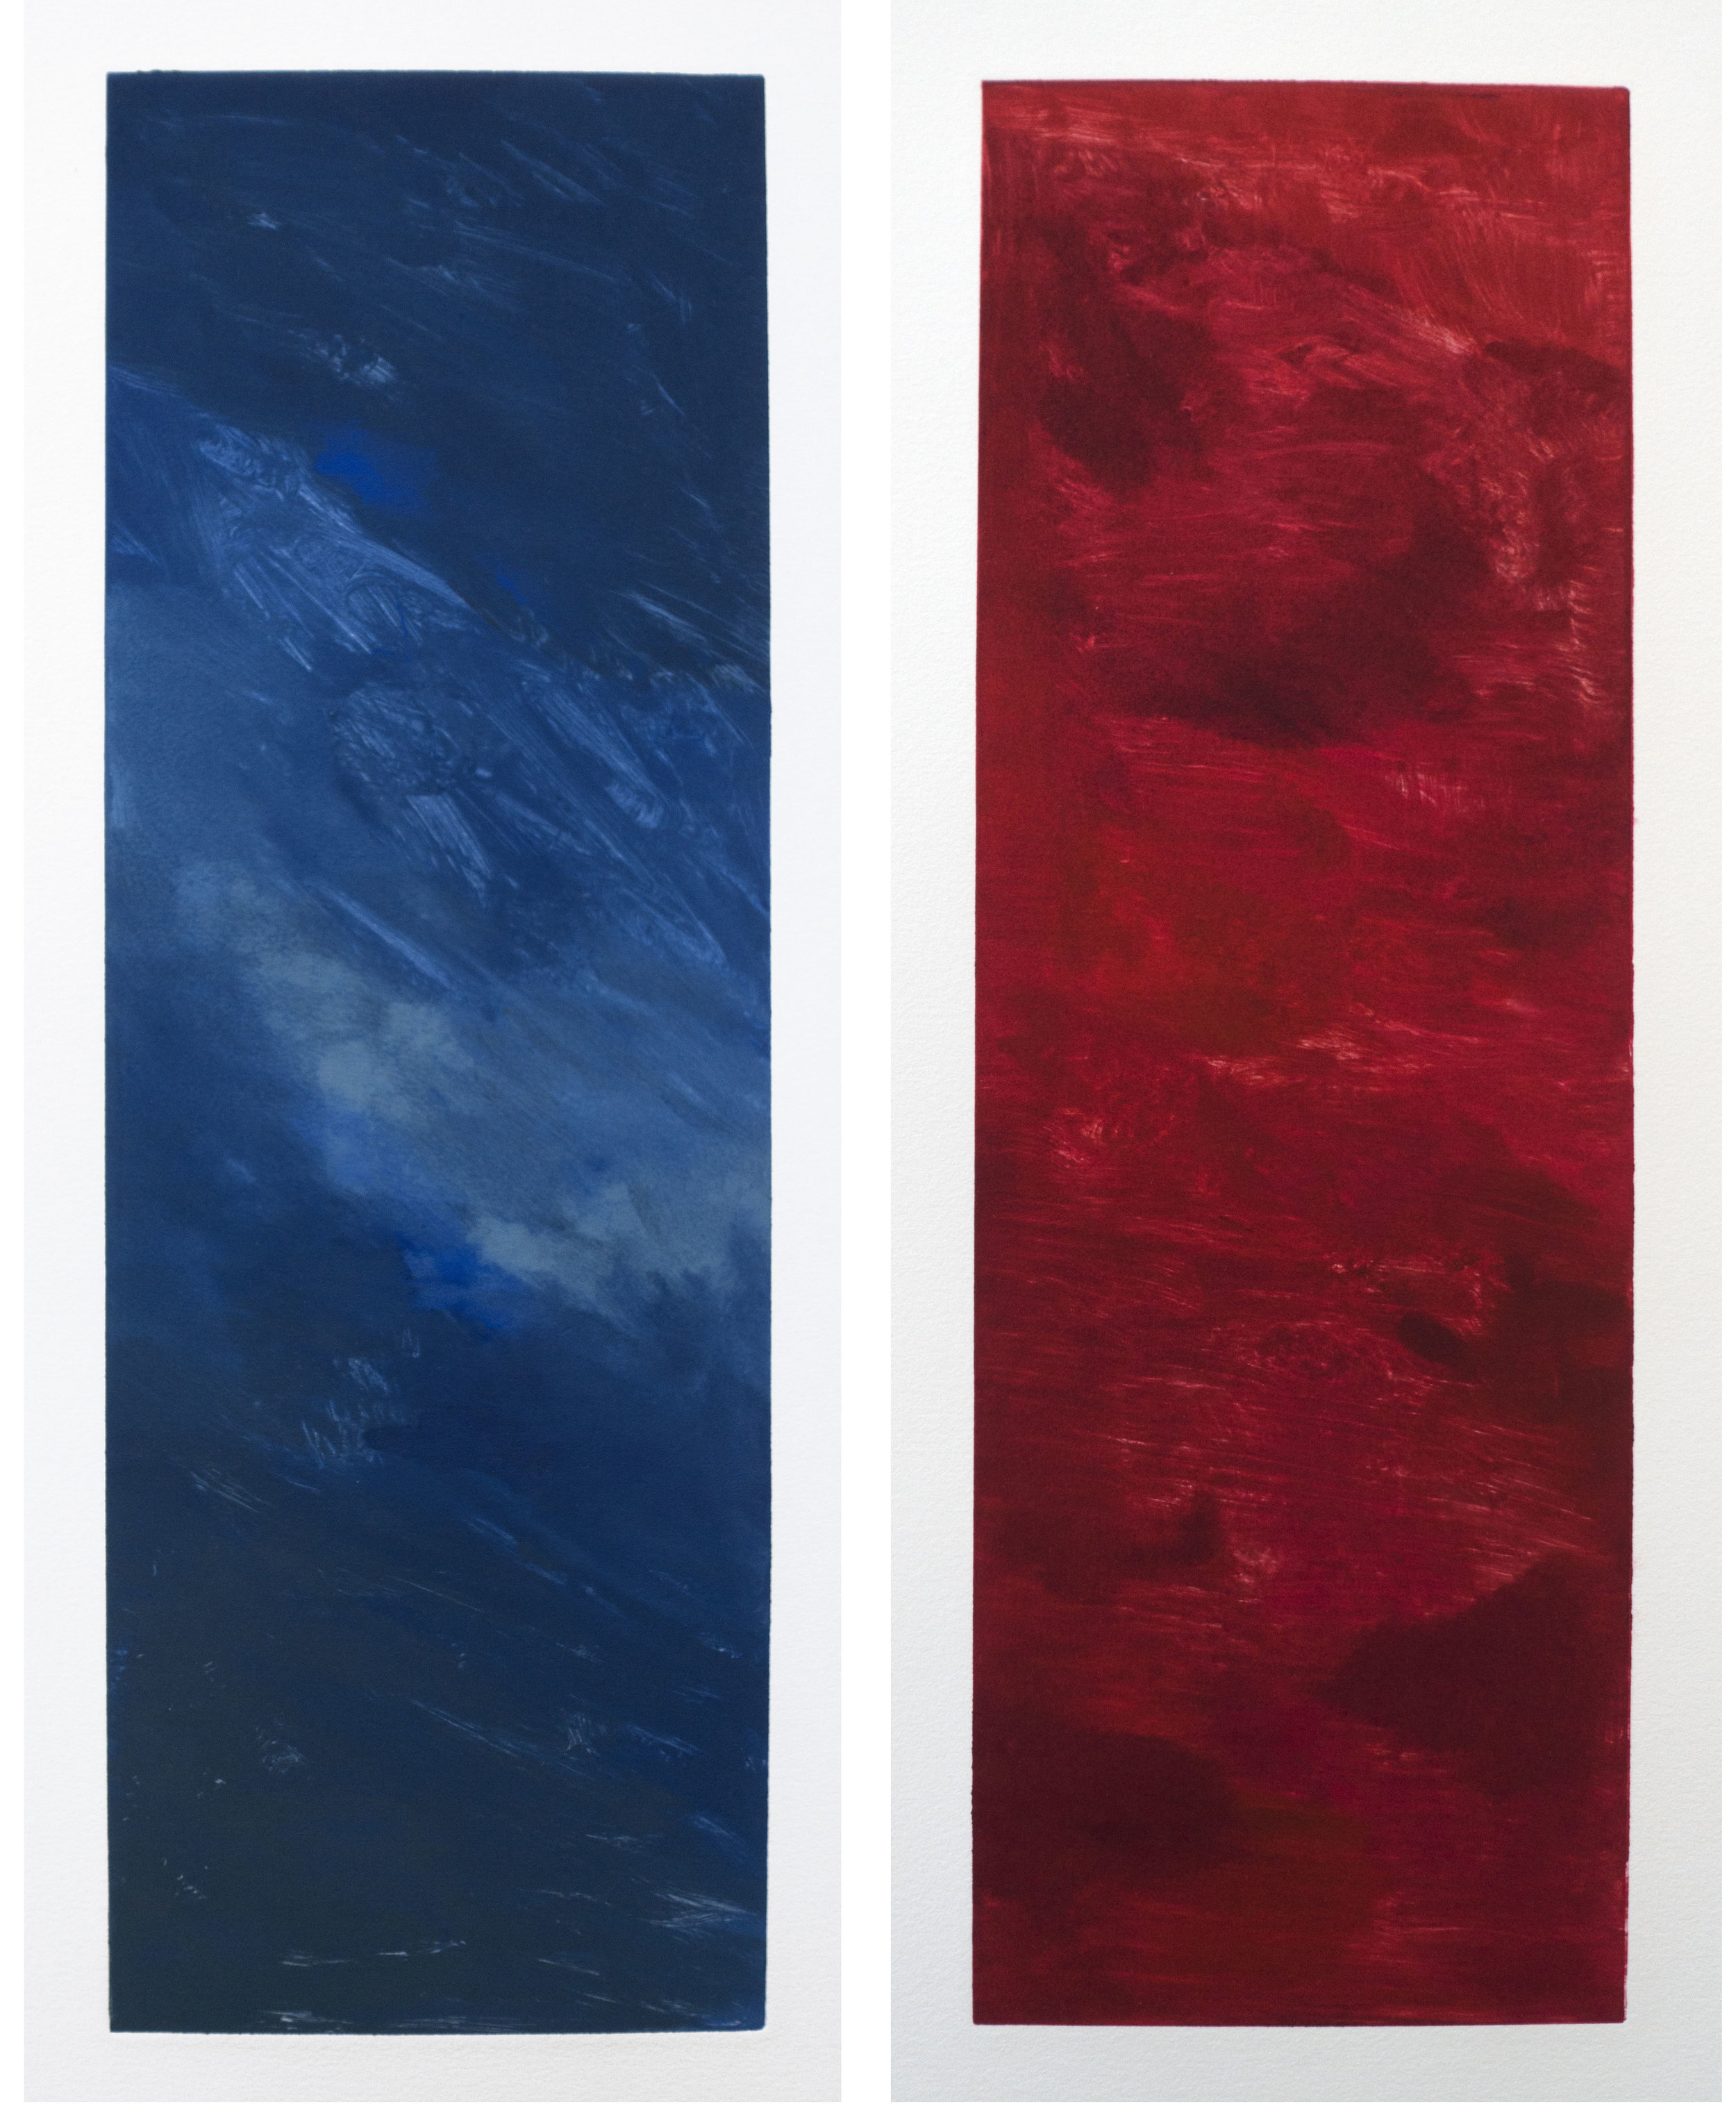 LH_blue and red pair_for newsletter.jpg